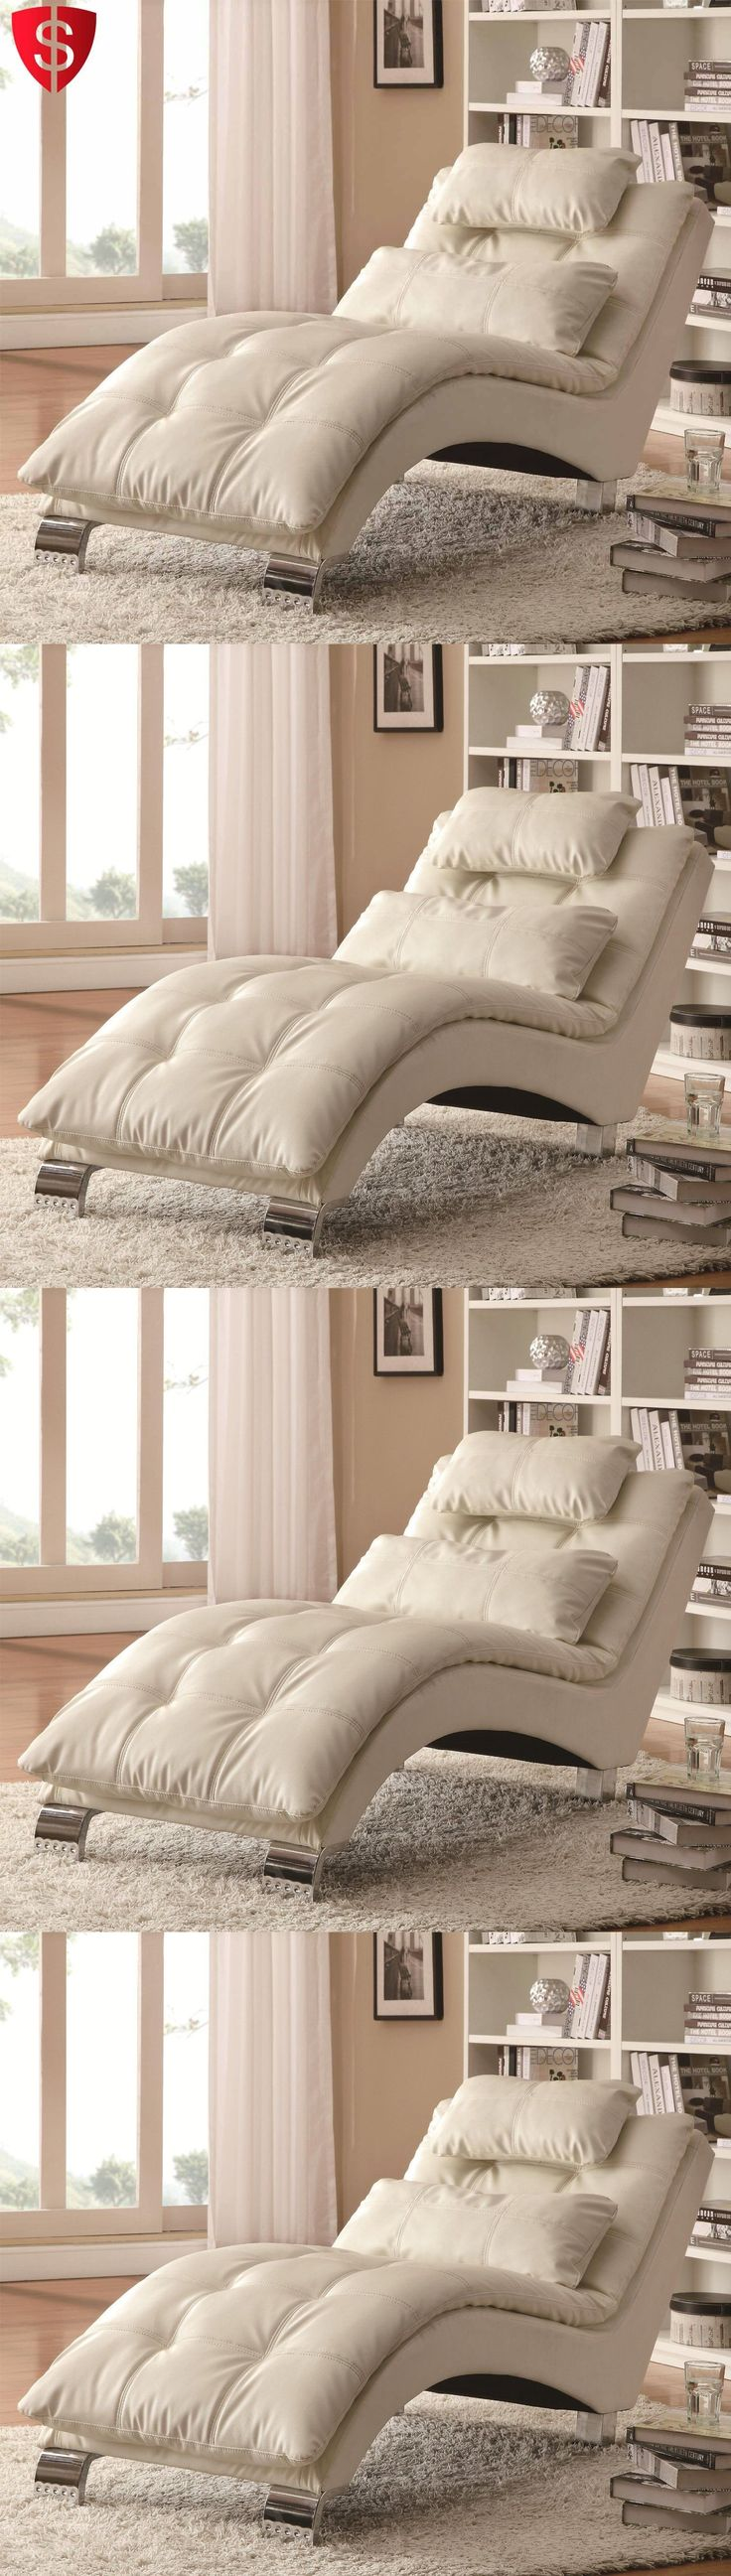 furniture: Contemporary Chaise Lounge Chair Furniture Living Room Modern Bedroom Leather BUY IT NOW ONLY: $386.27